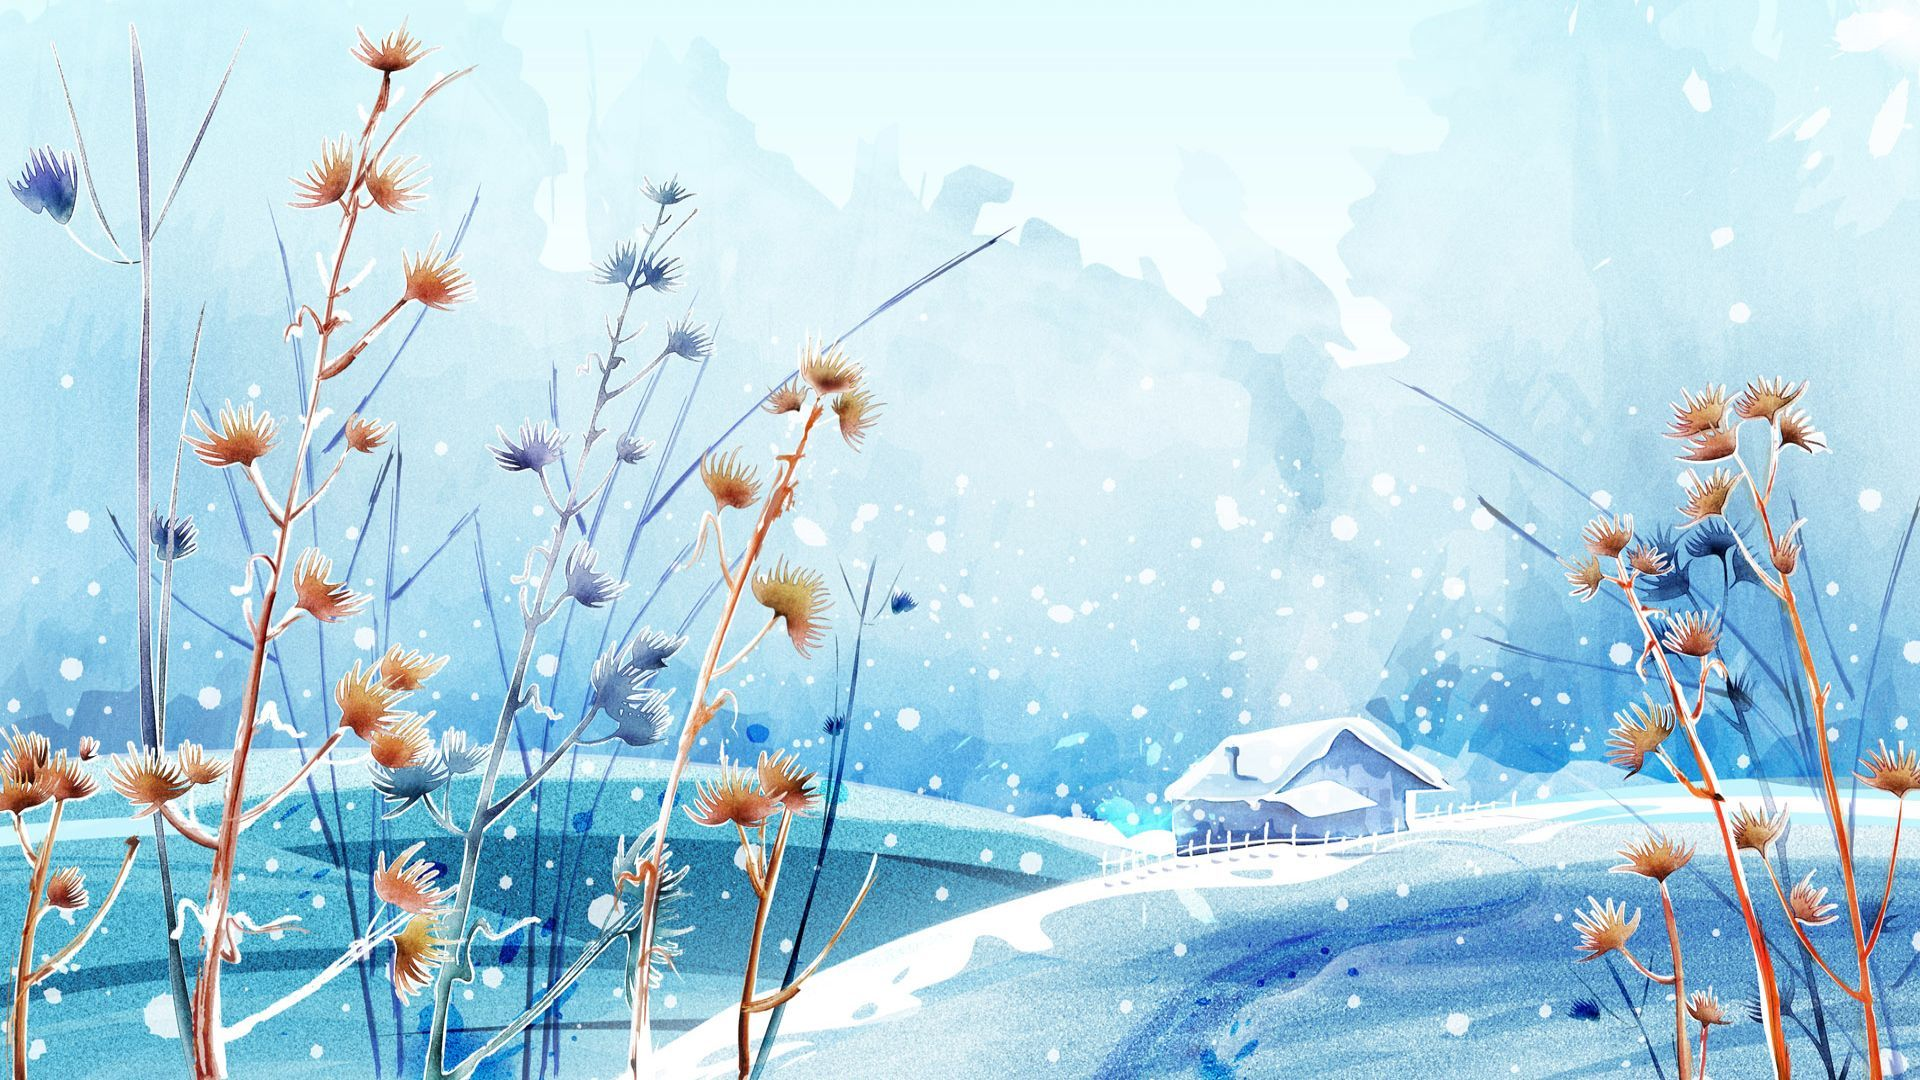 drawn-snowfall-desktop-background-6